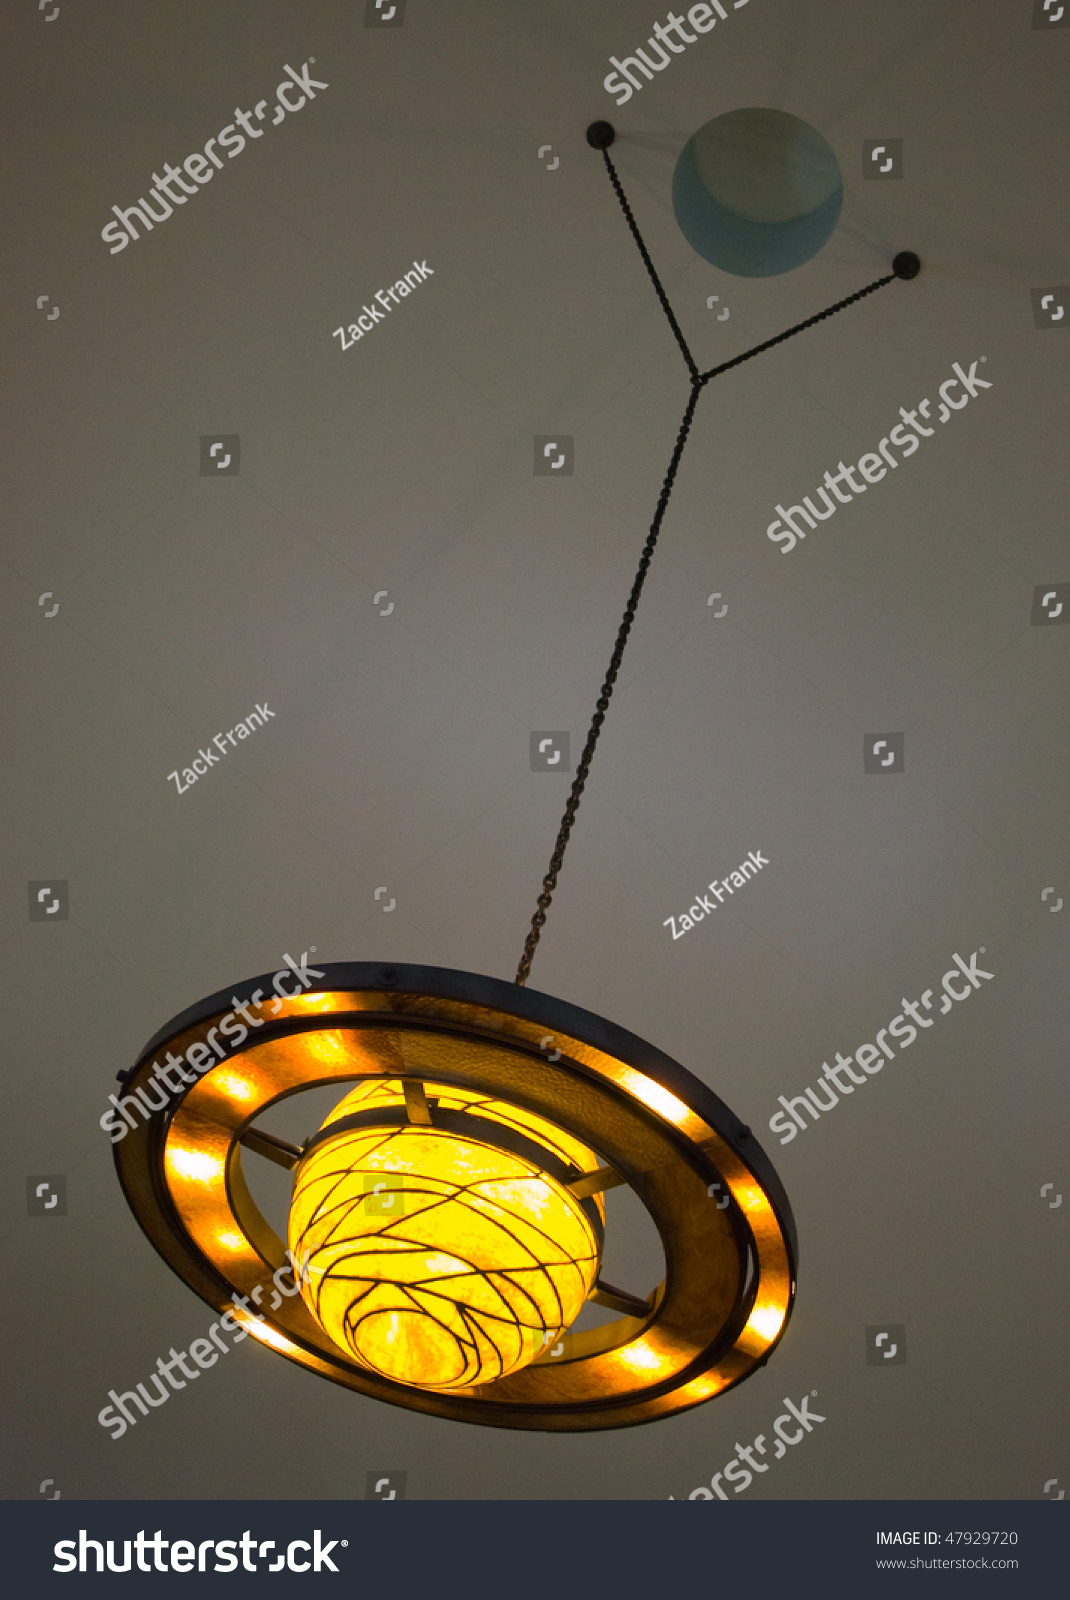 light fixture deutsch model railway wiring diagrams saturn stock photo 47929720 shutterstock